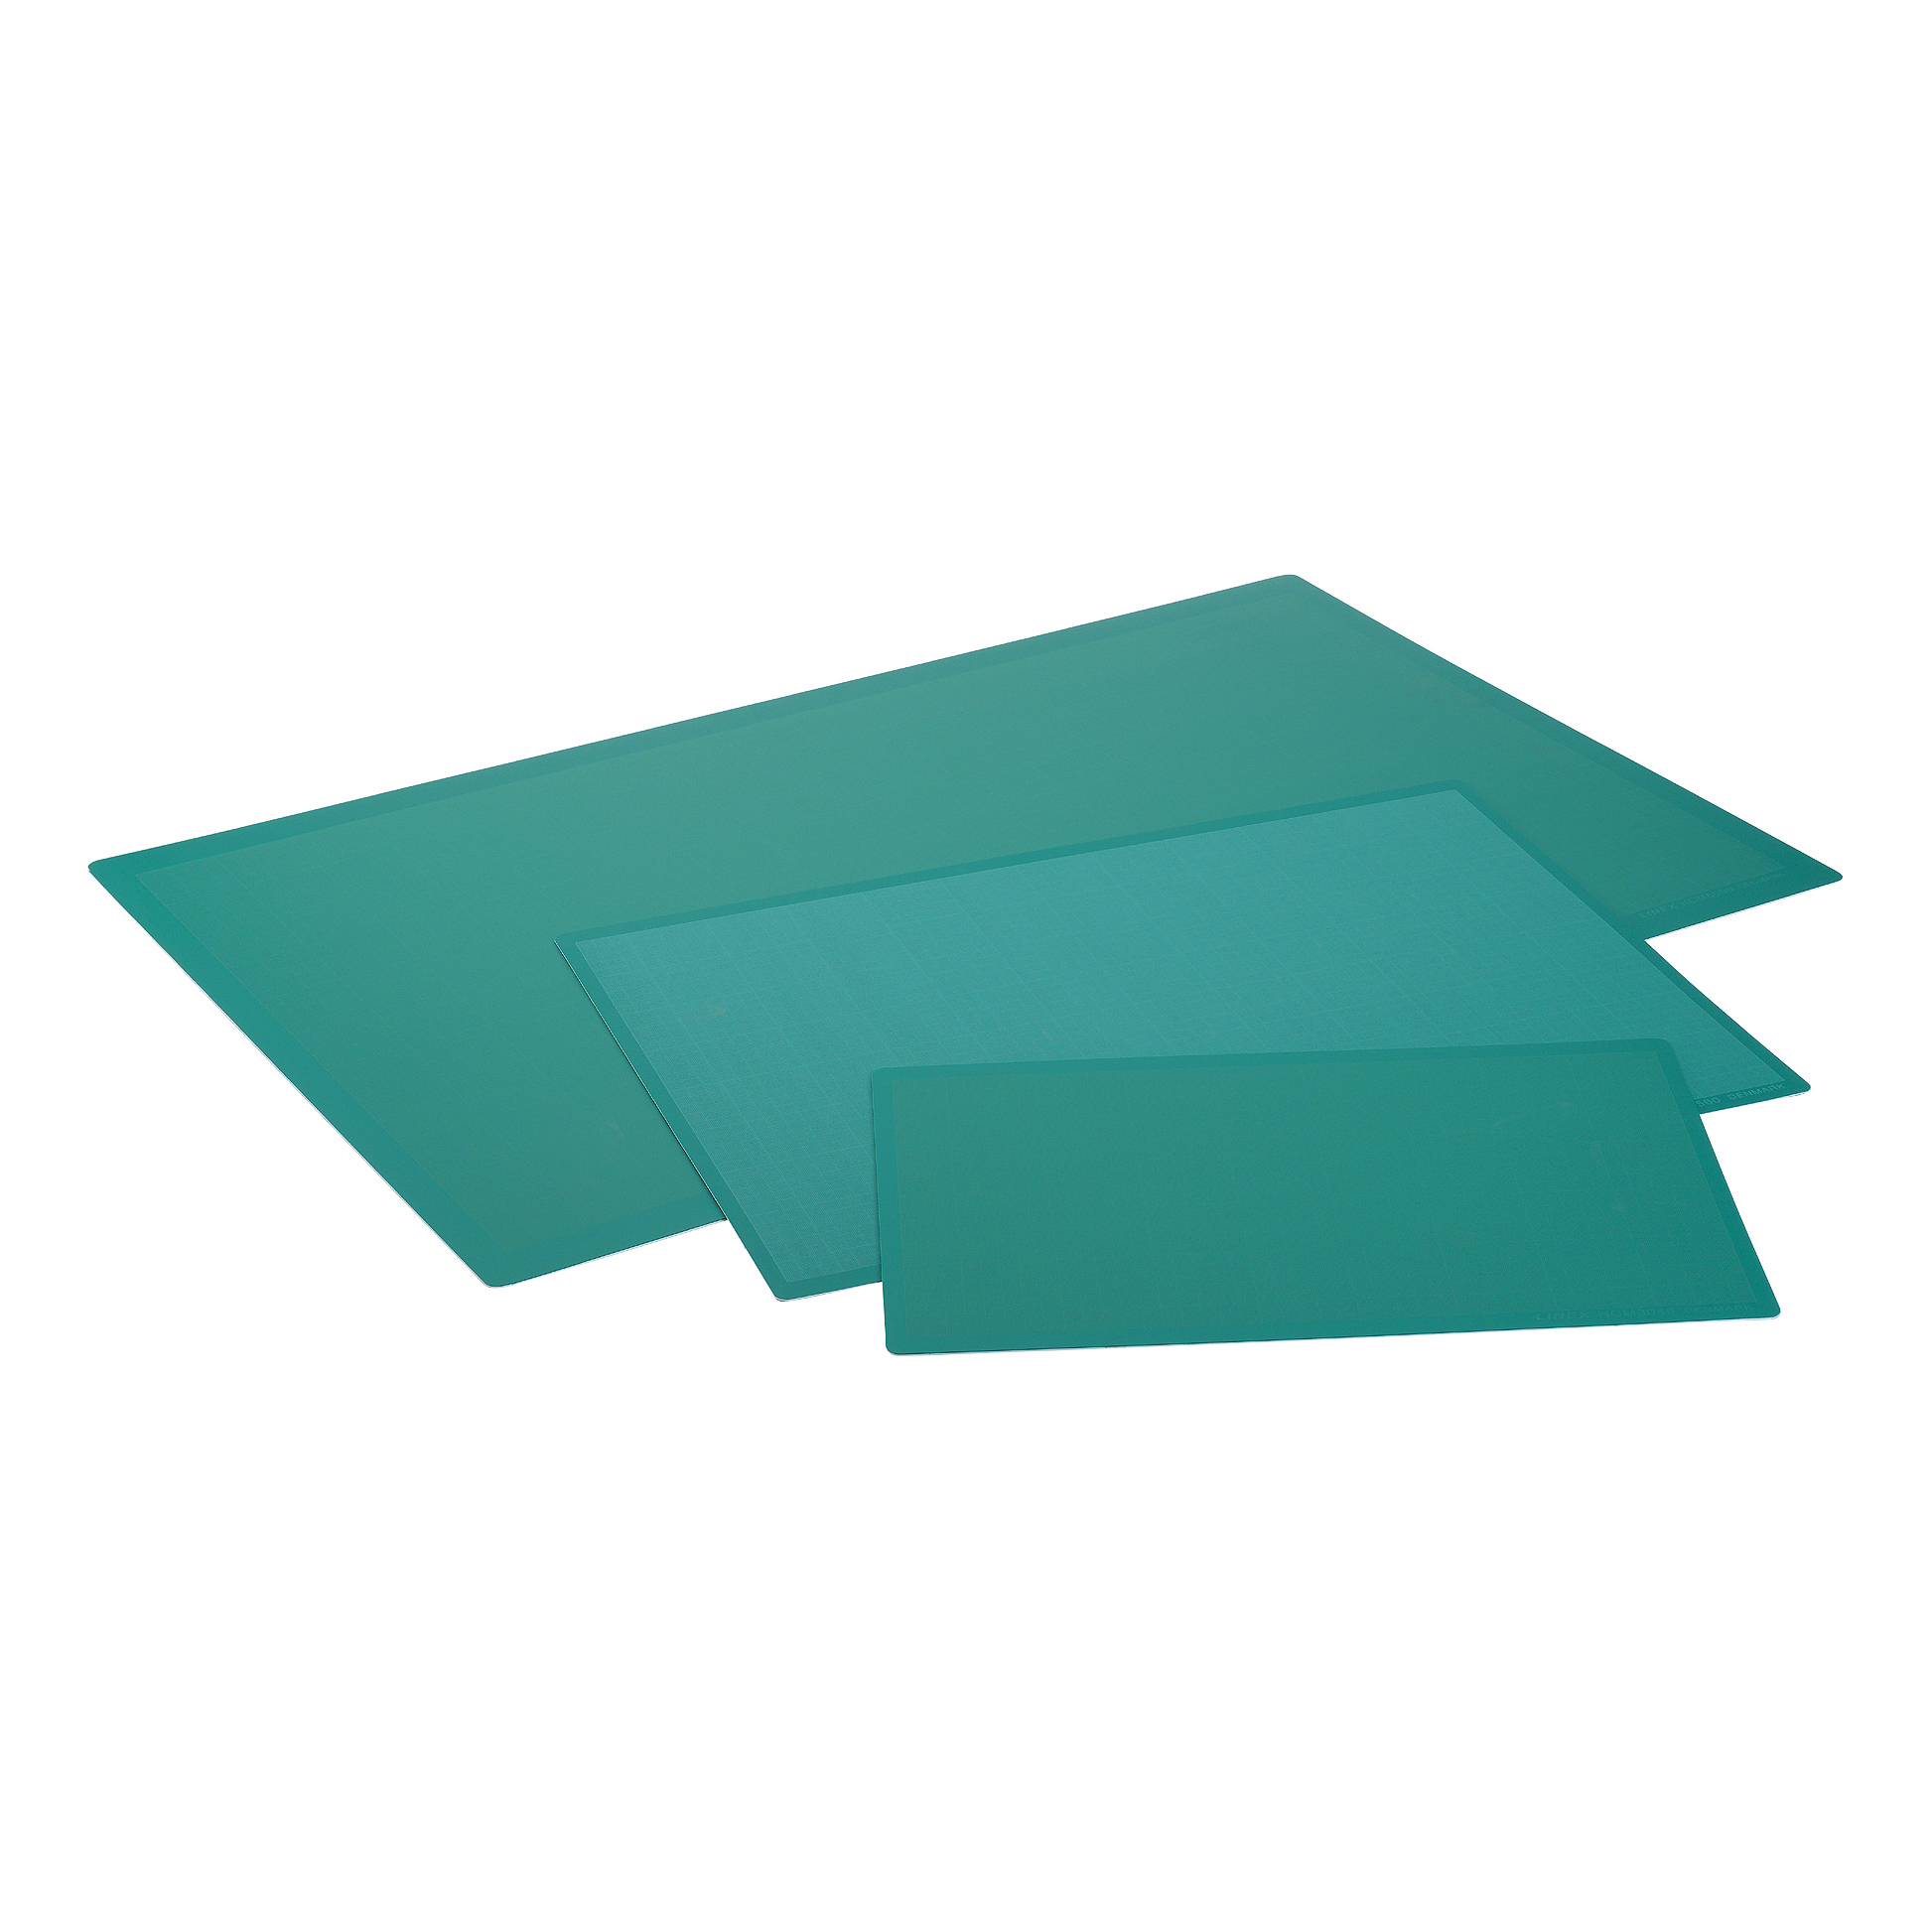 Cutting Mat Anti Slip Self Healing 3 Layers 1mm Grid on Front A1 Green Ref LXKHCM6090